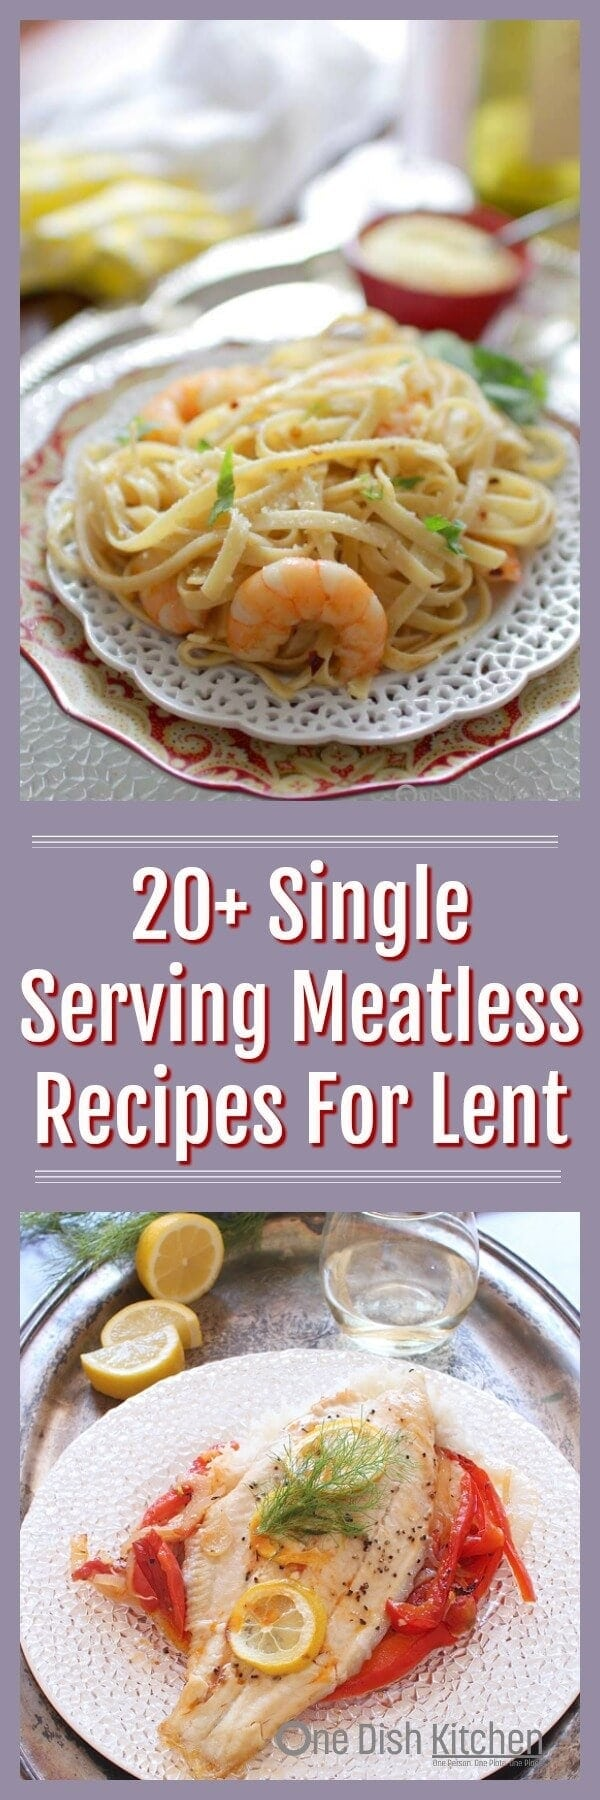 single serving meatless recipes